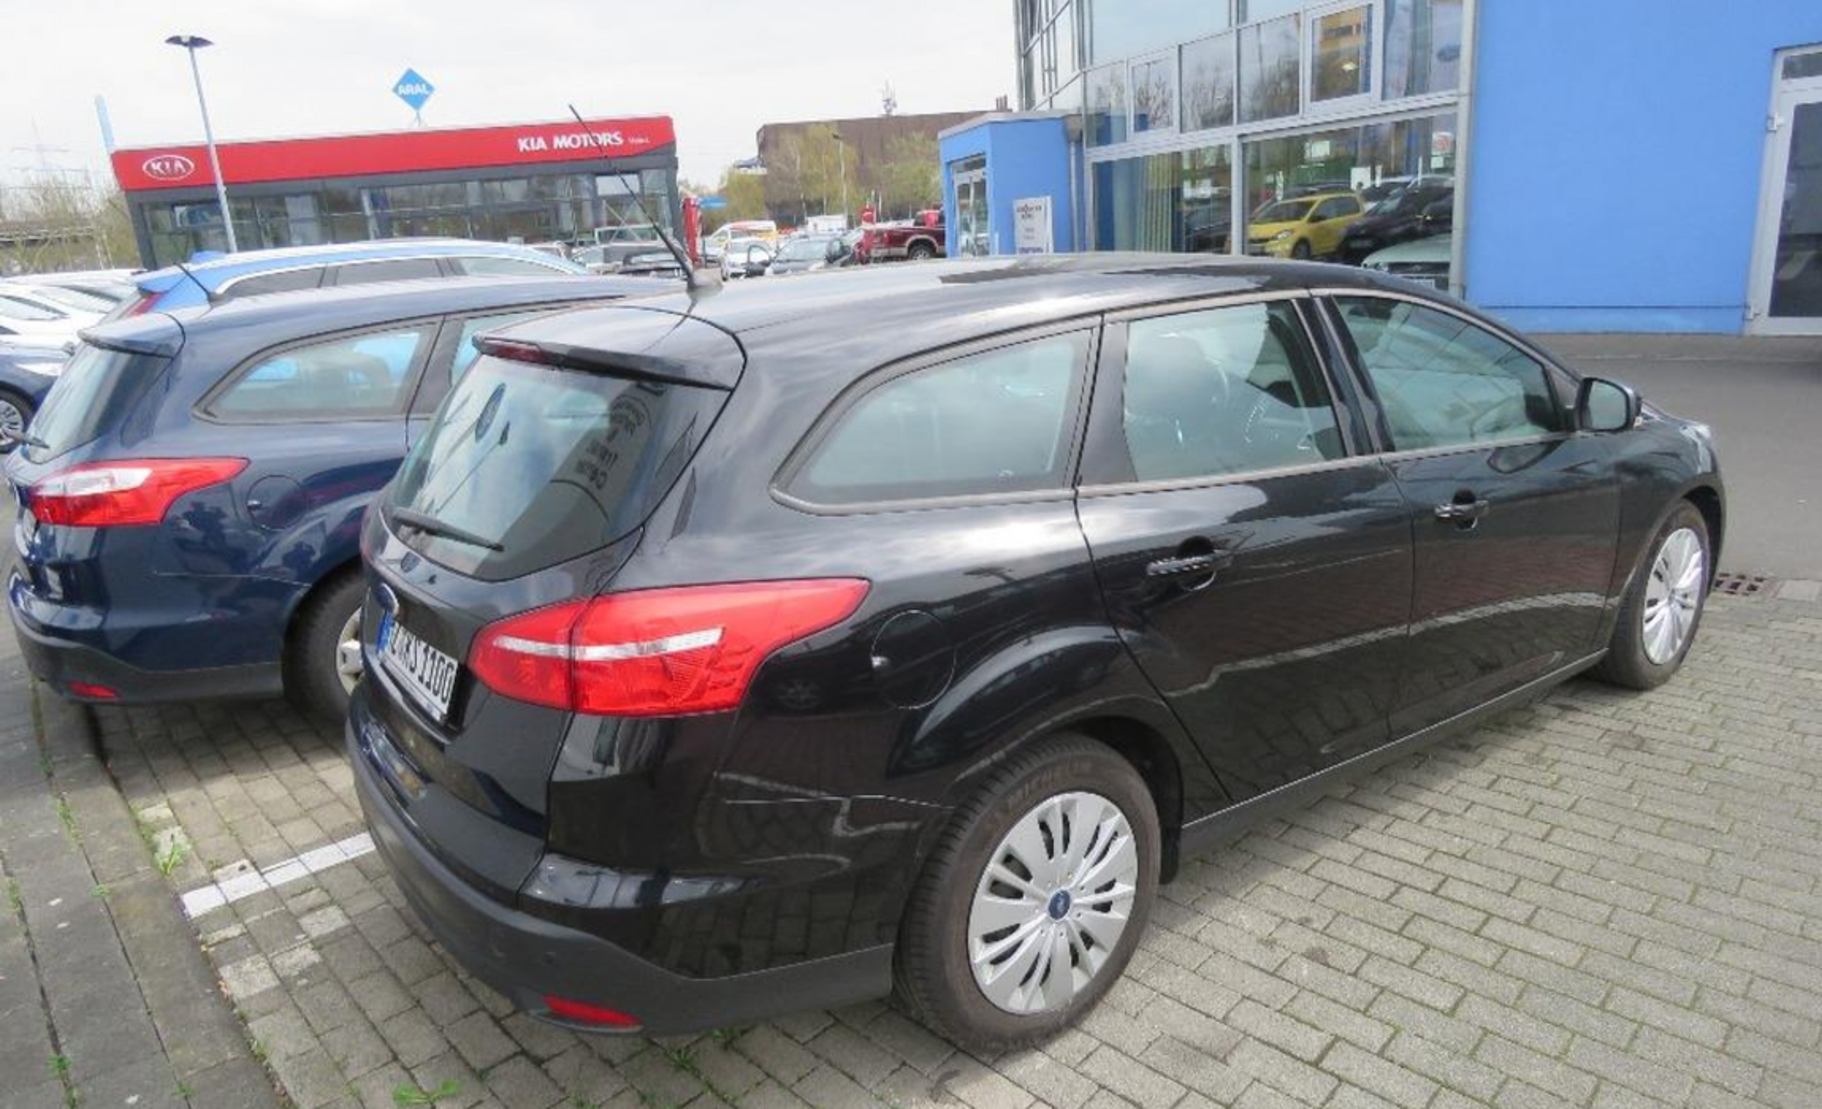 Ford Focus 1.5 TDCi DPF Start-Stop Ambiente (576315) detail2